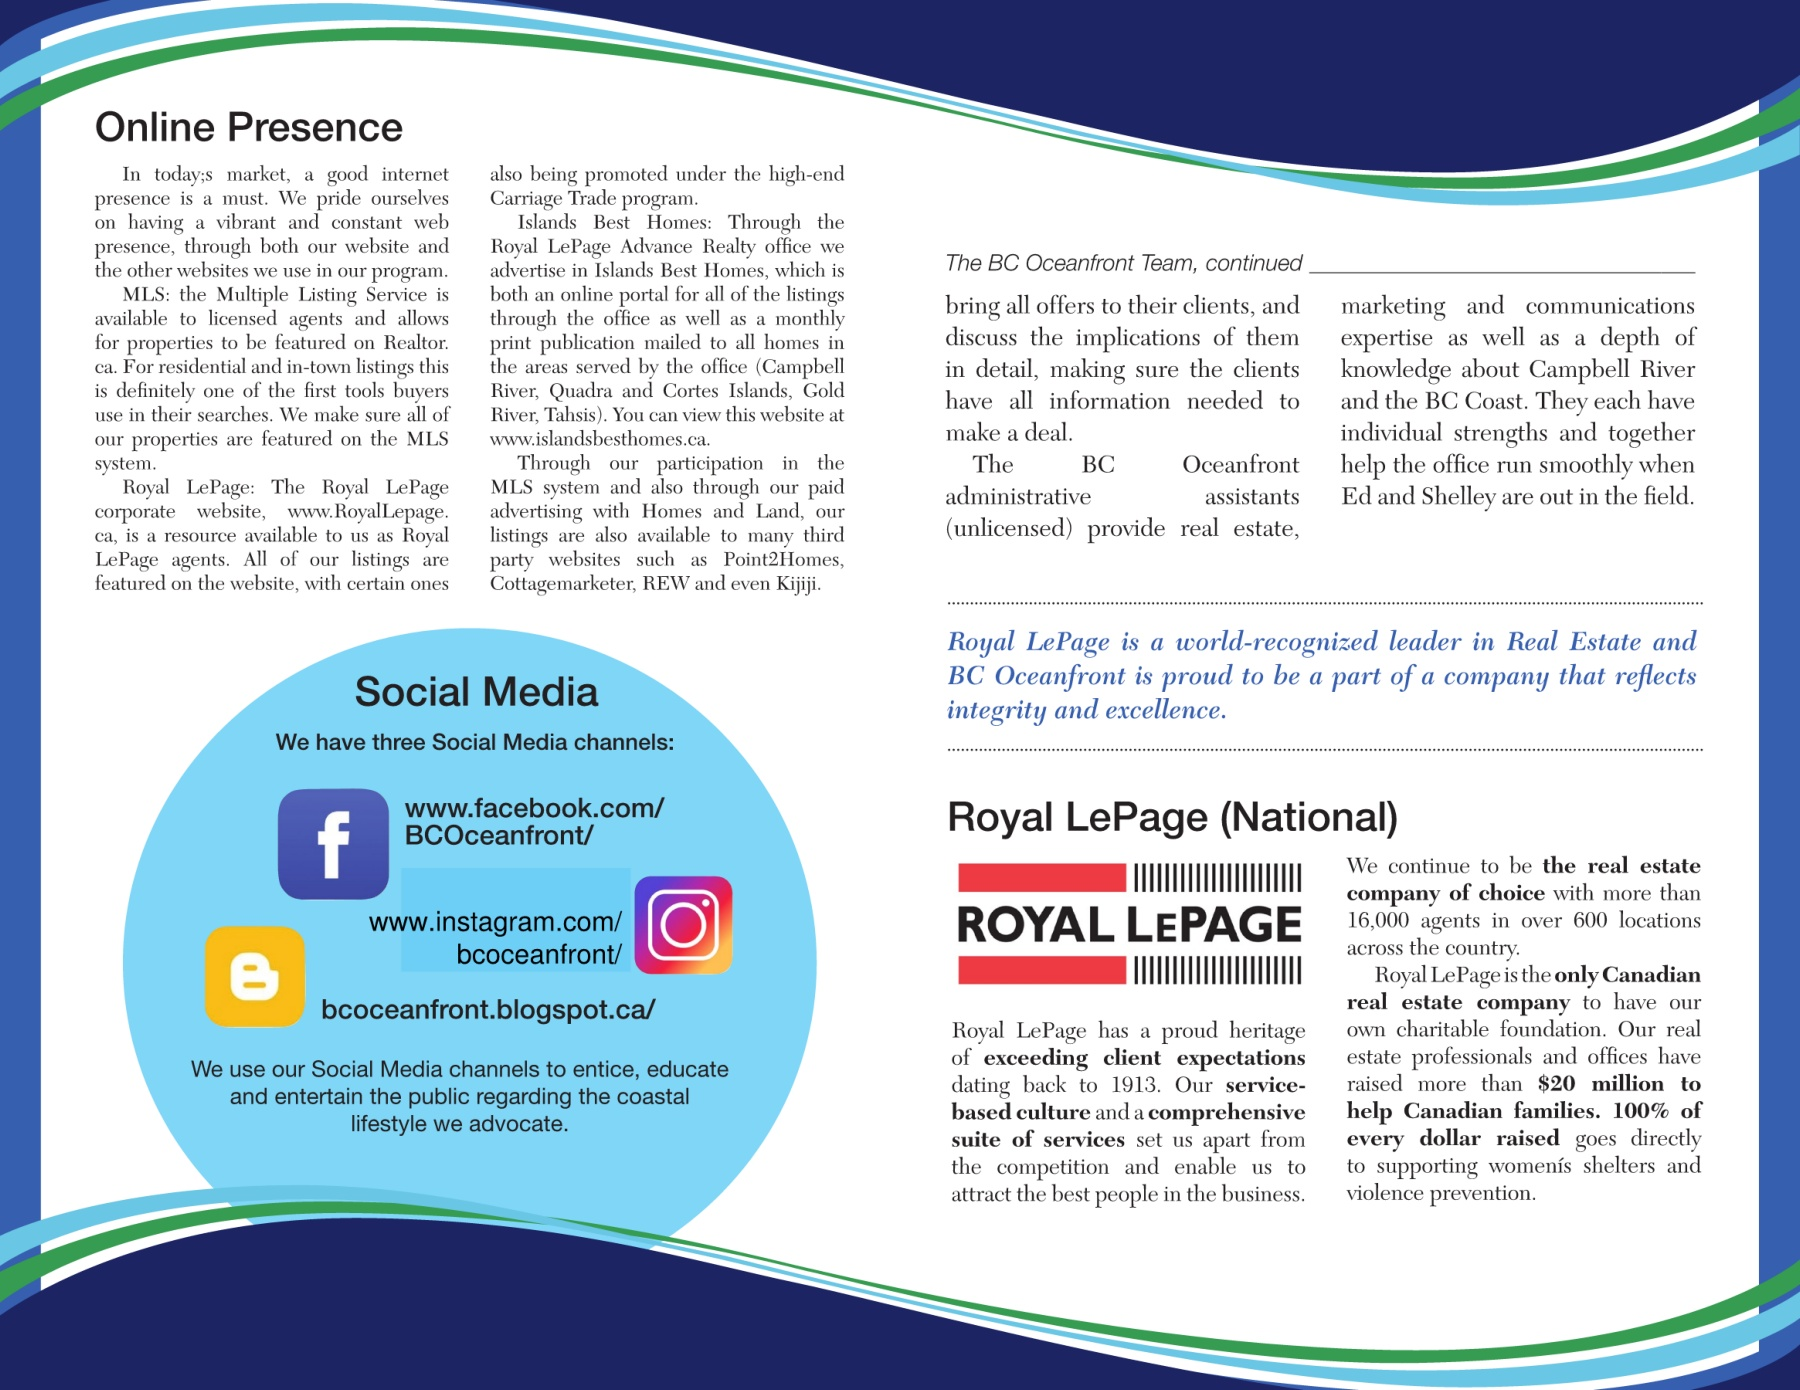 BCO Marketing Brochure 2018 Pages 1 - 6 - Text Version | AnyFlip